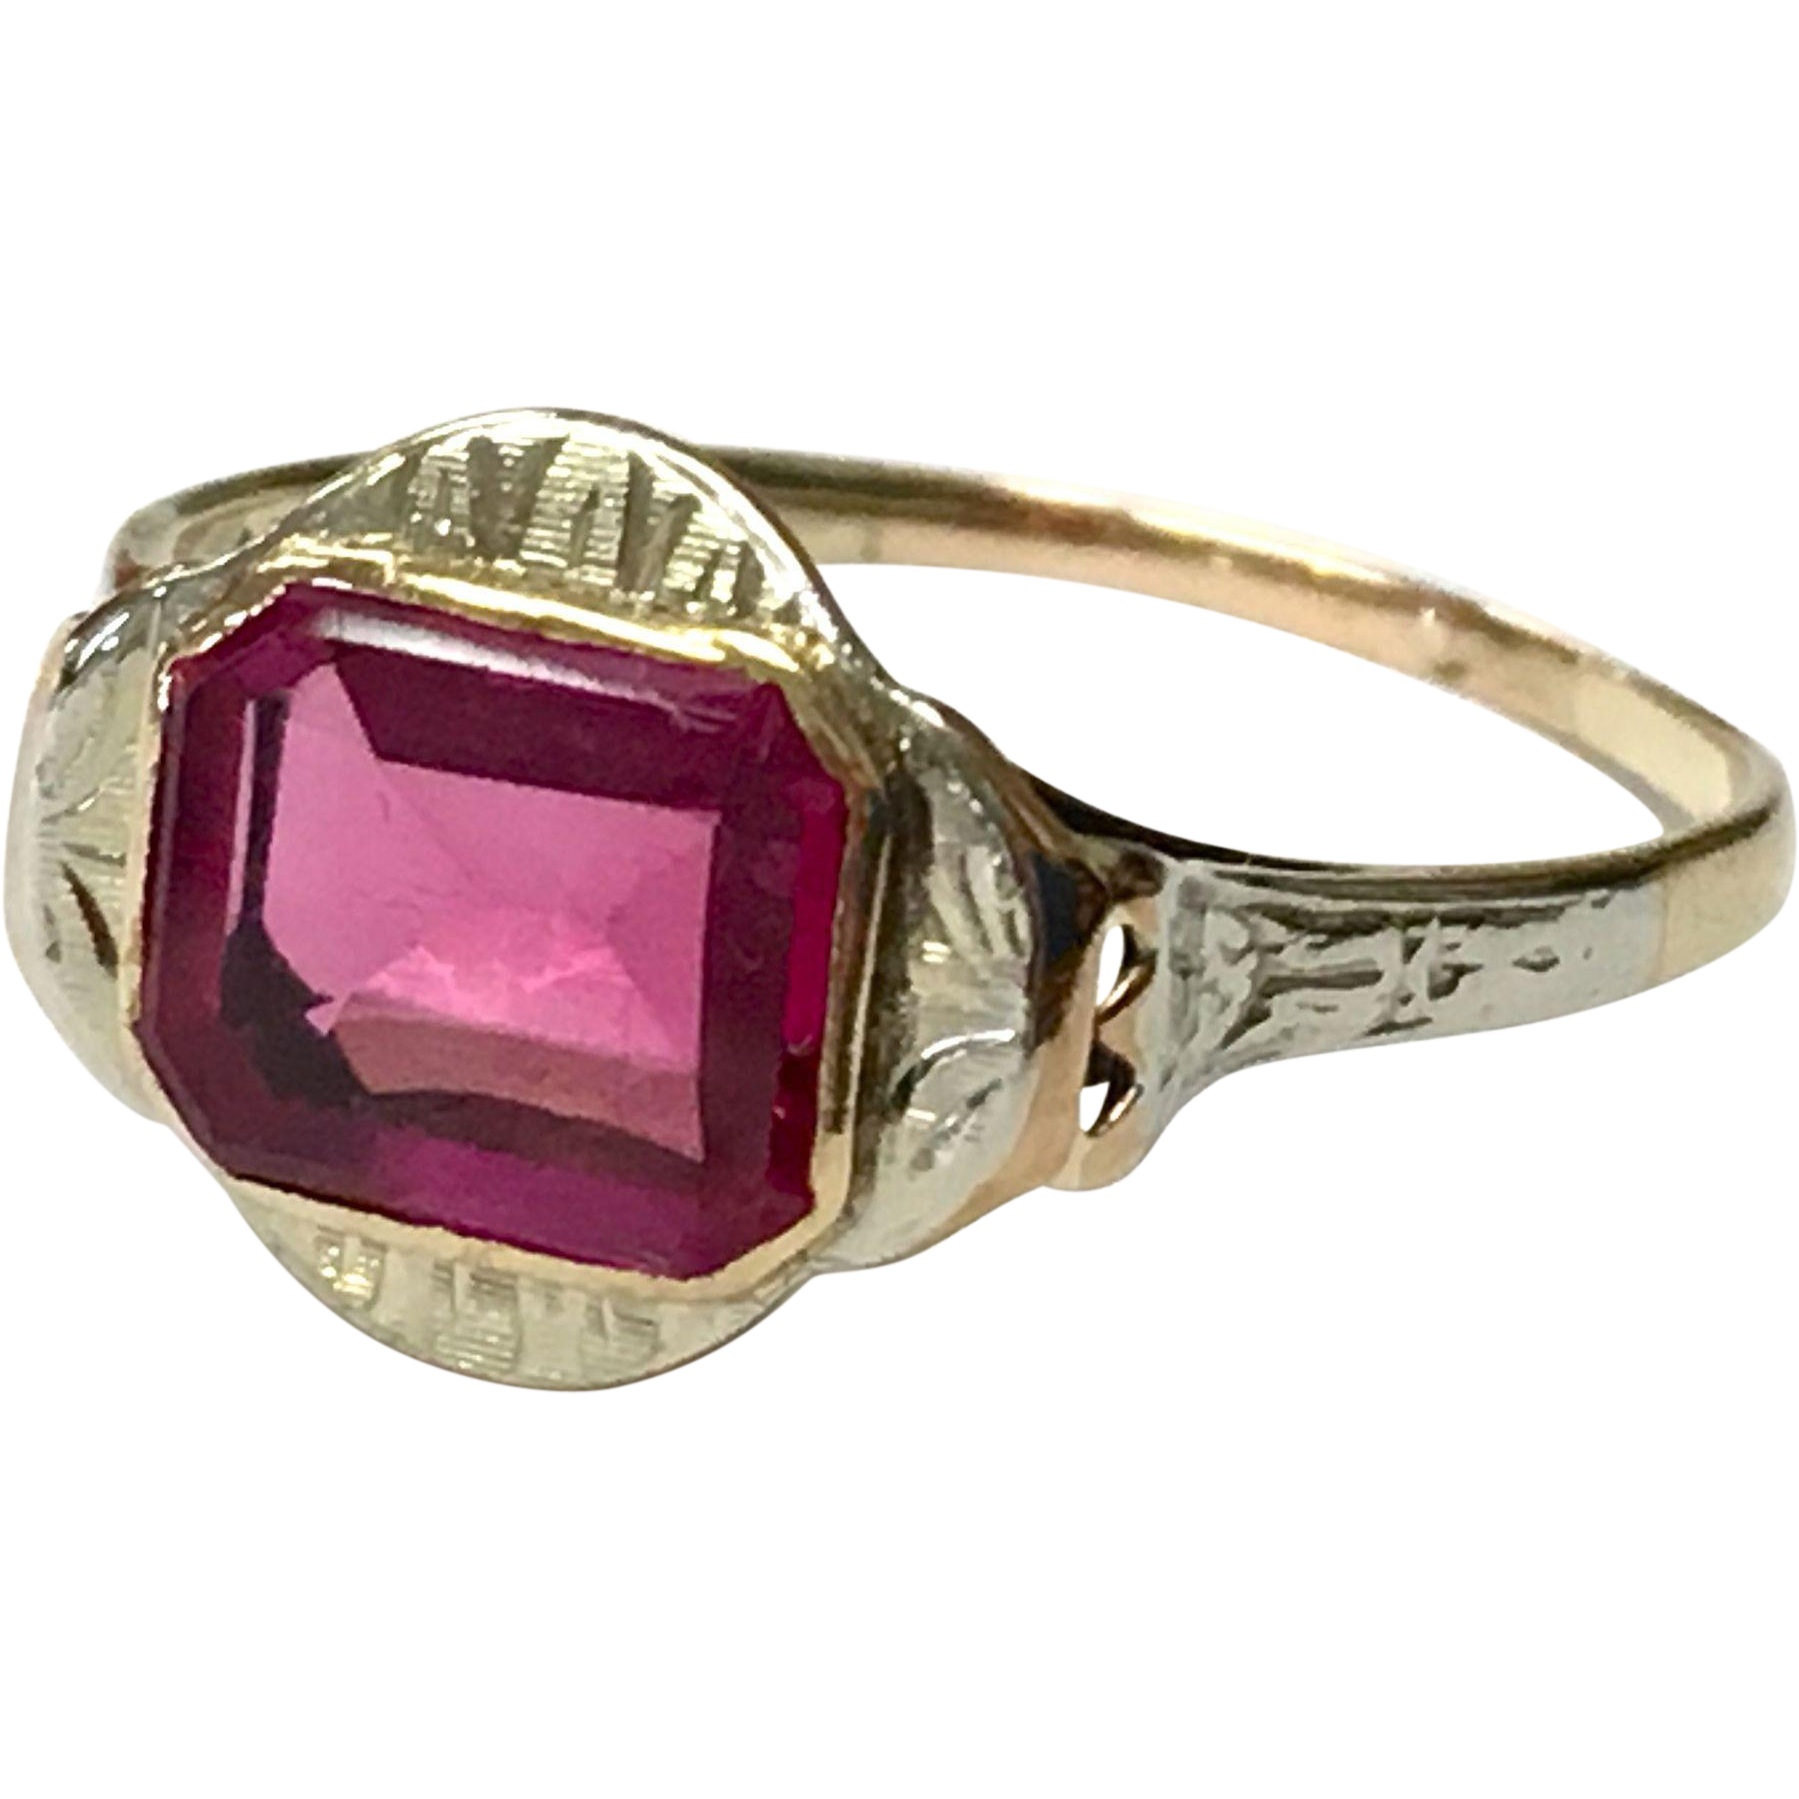 Unique antique 10K two tone gold art deco ring with red flat oblong stone and etched setting